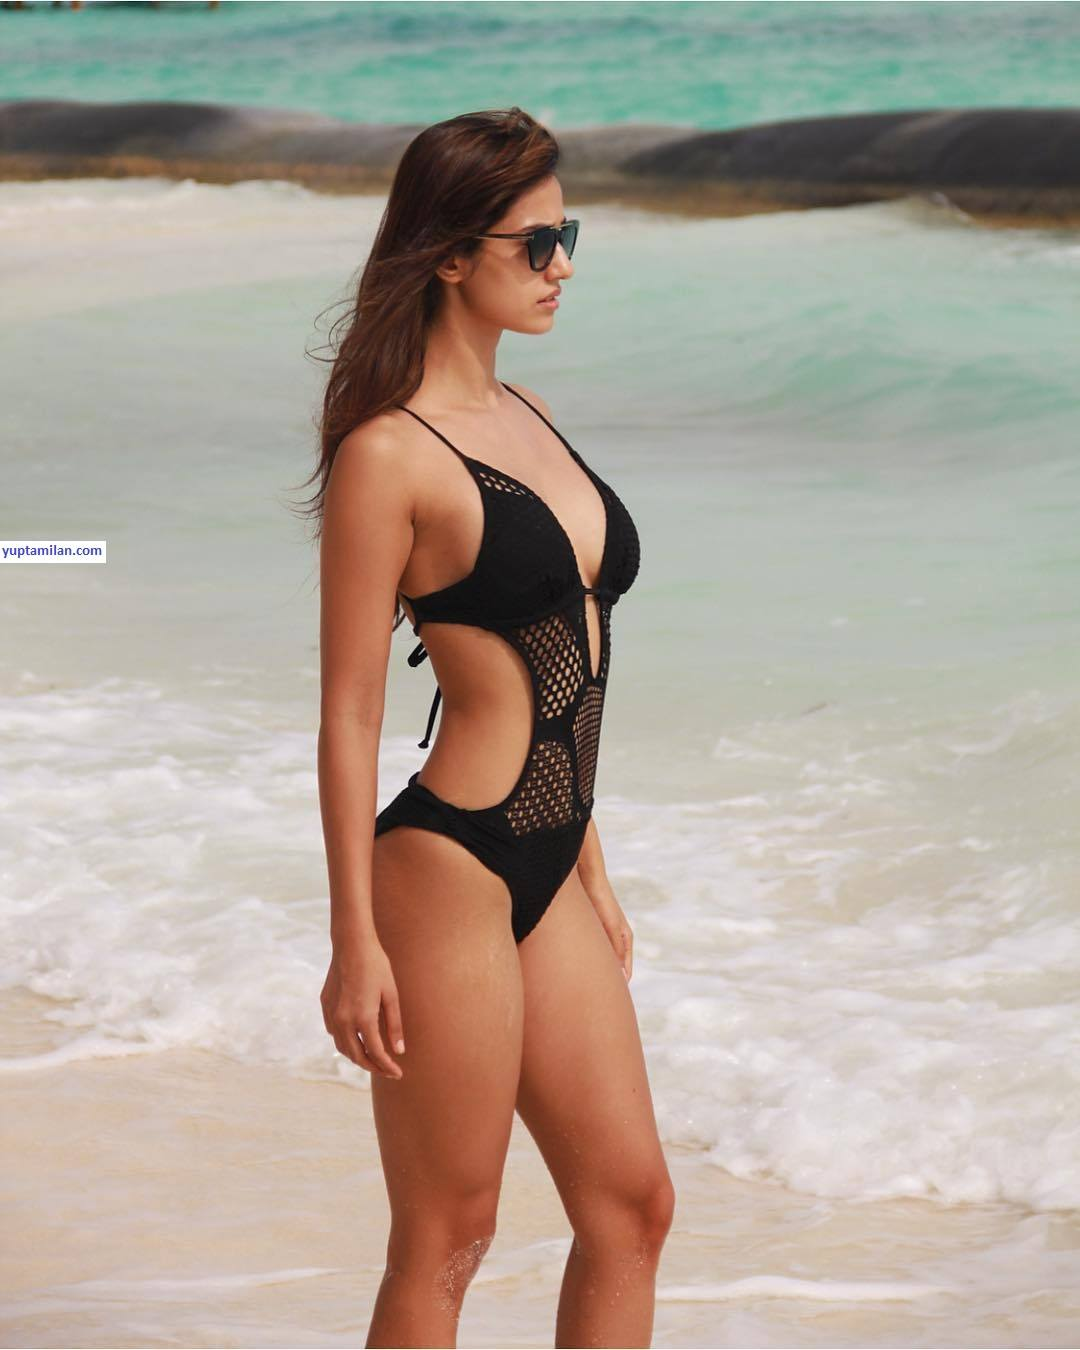 Disha Patani hot Bikini Pictures, Sexy Images in Lingerie